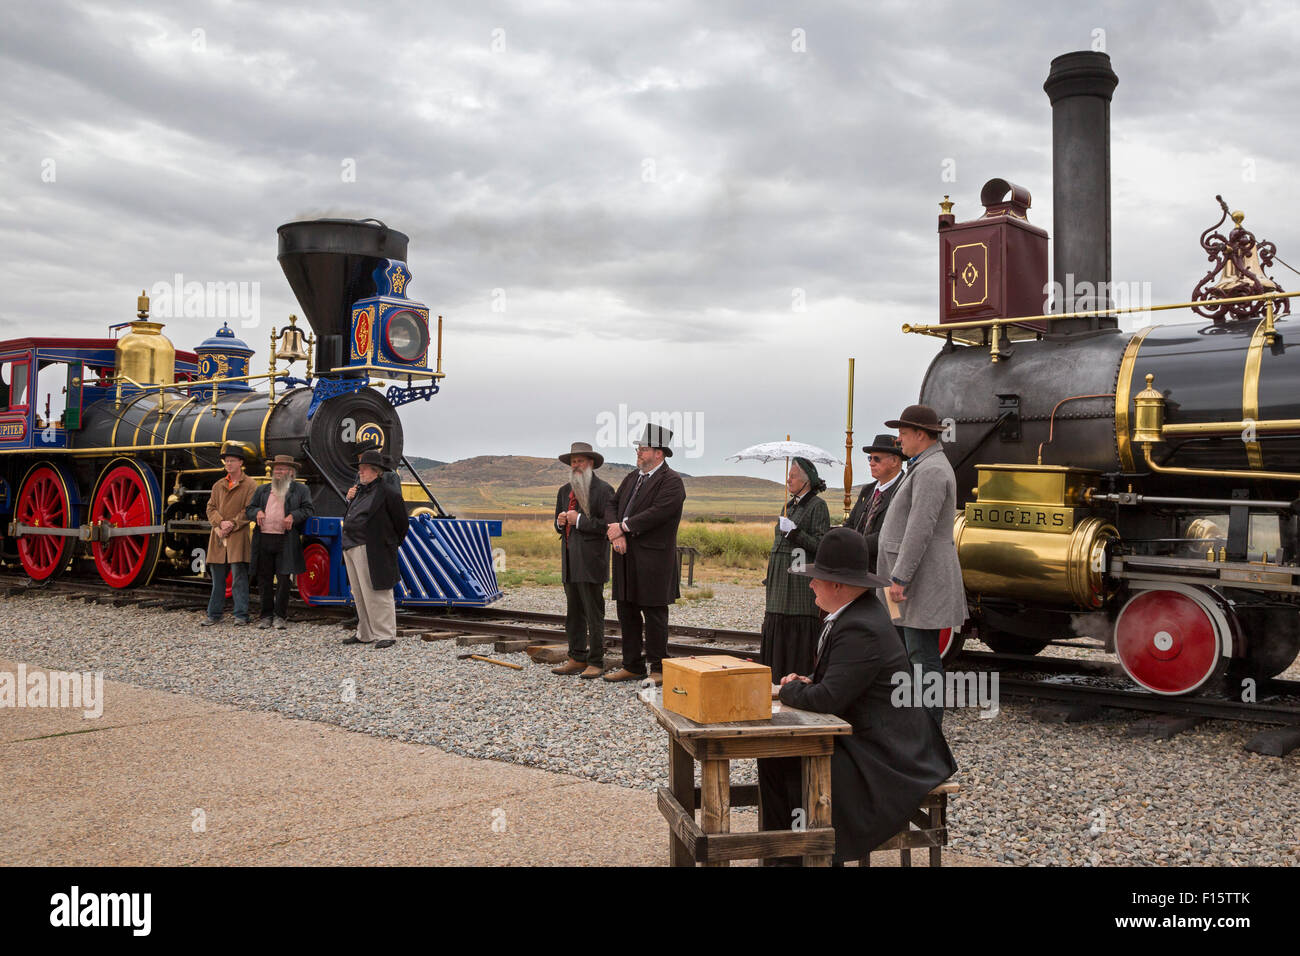 Promontory Summit, Utah - Golden Spike National Historic Site, where the first transcontinental railroad was completed - Stock Image